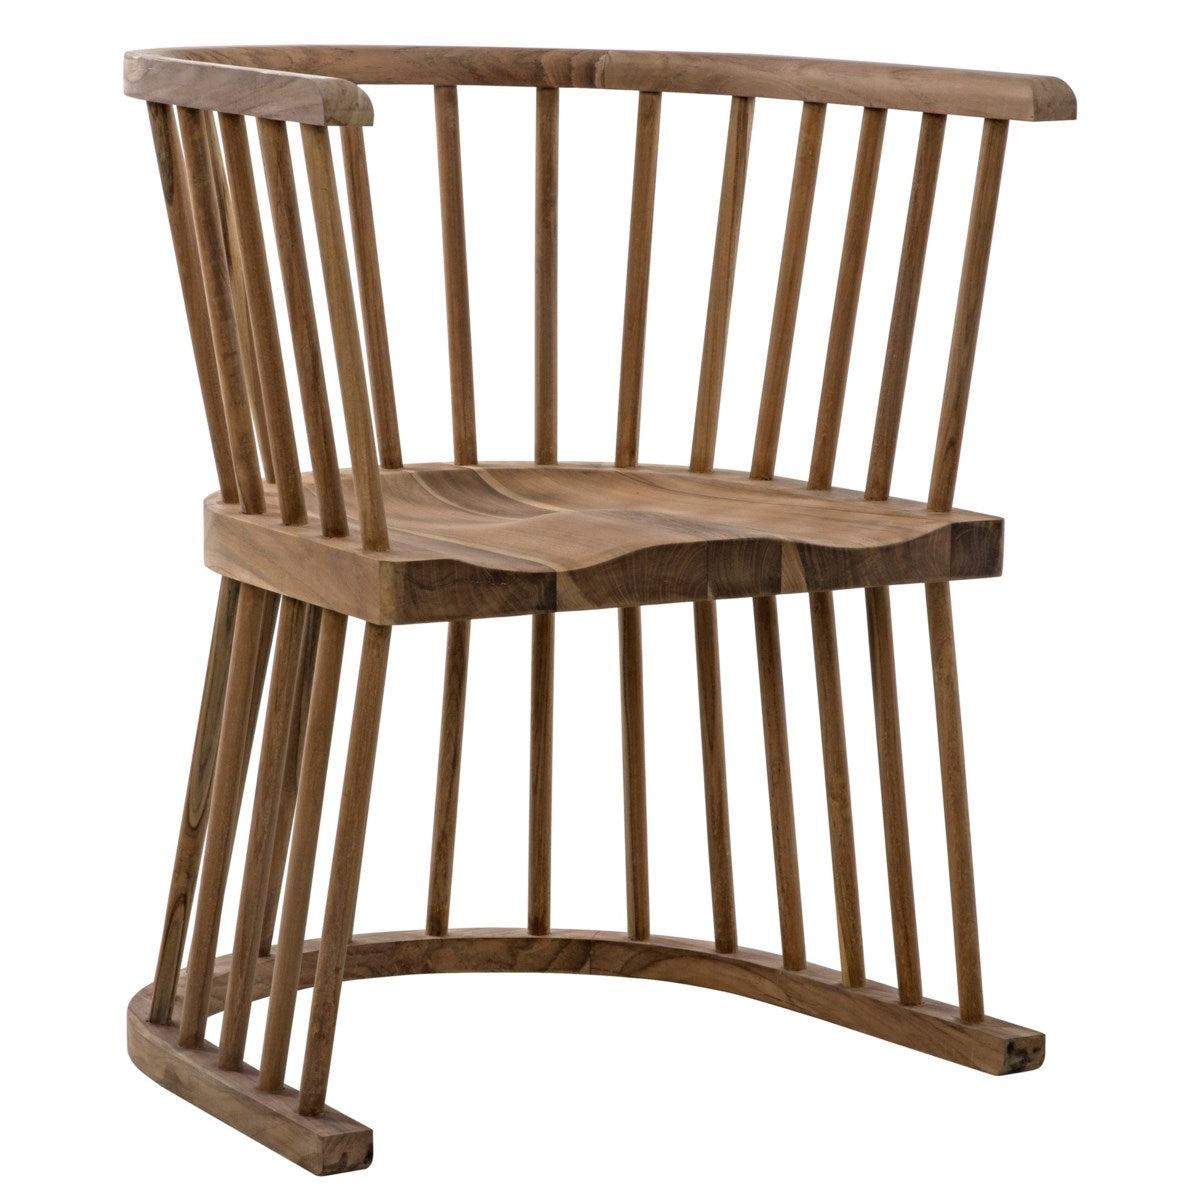 Noir Bolah Chair, Teak